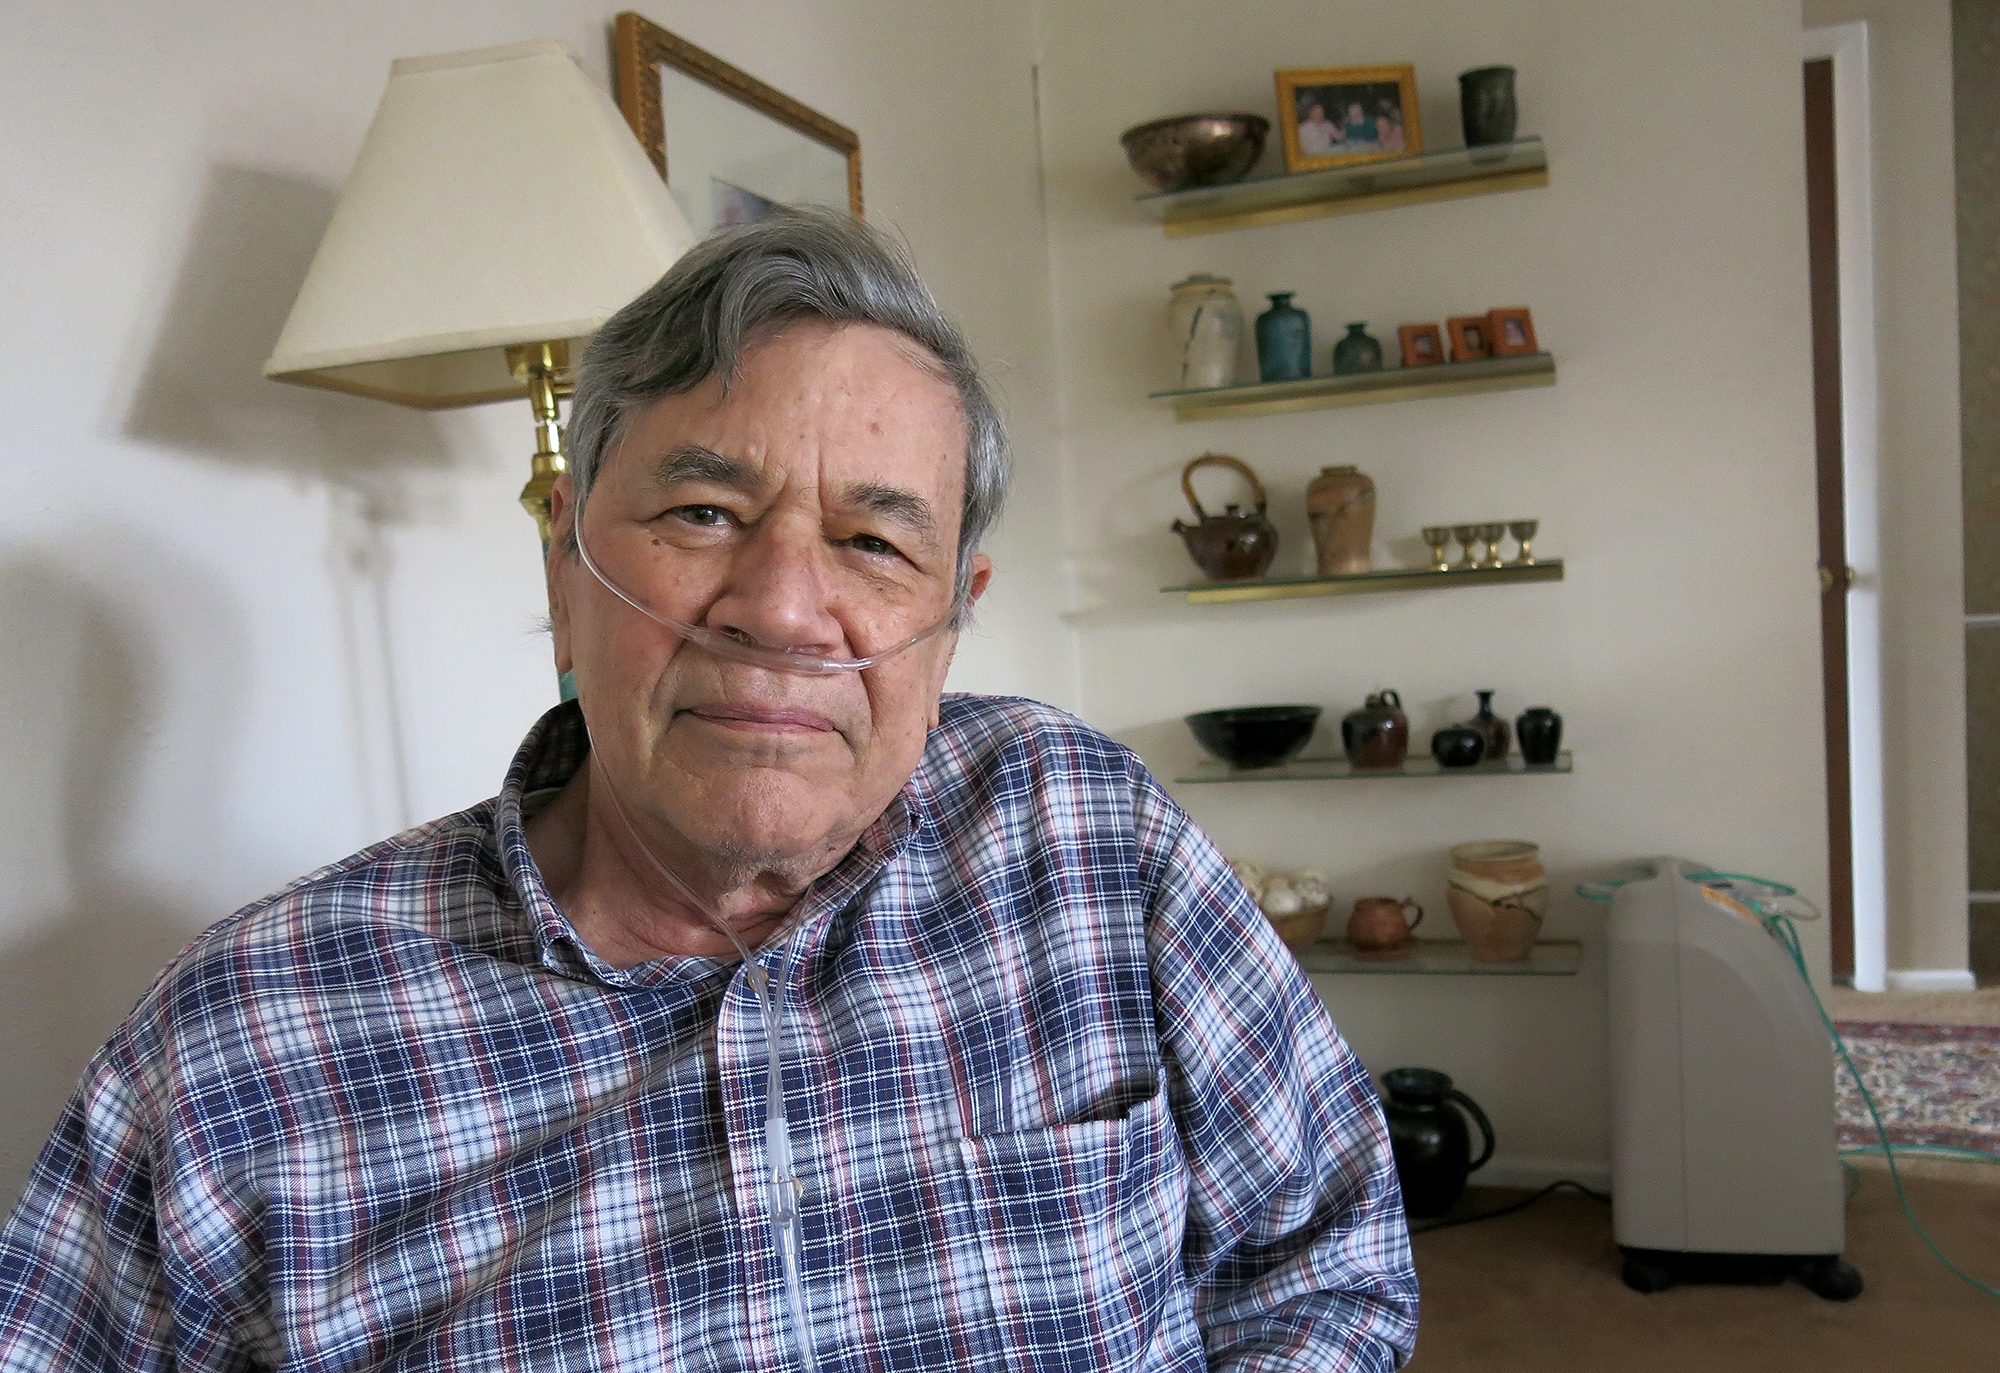 <p>Mike Manes is a retired U.S. Navy veteran who gets his healthcare from the VA, in his home near Littleton on Wednesday, April 1, 2015.</p>